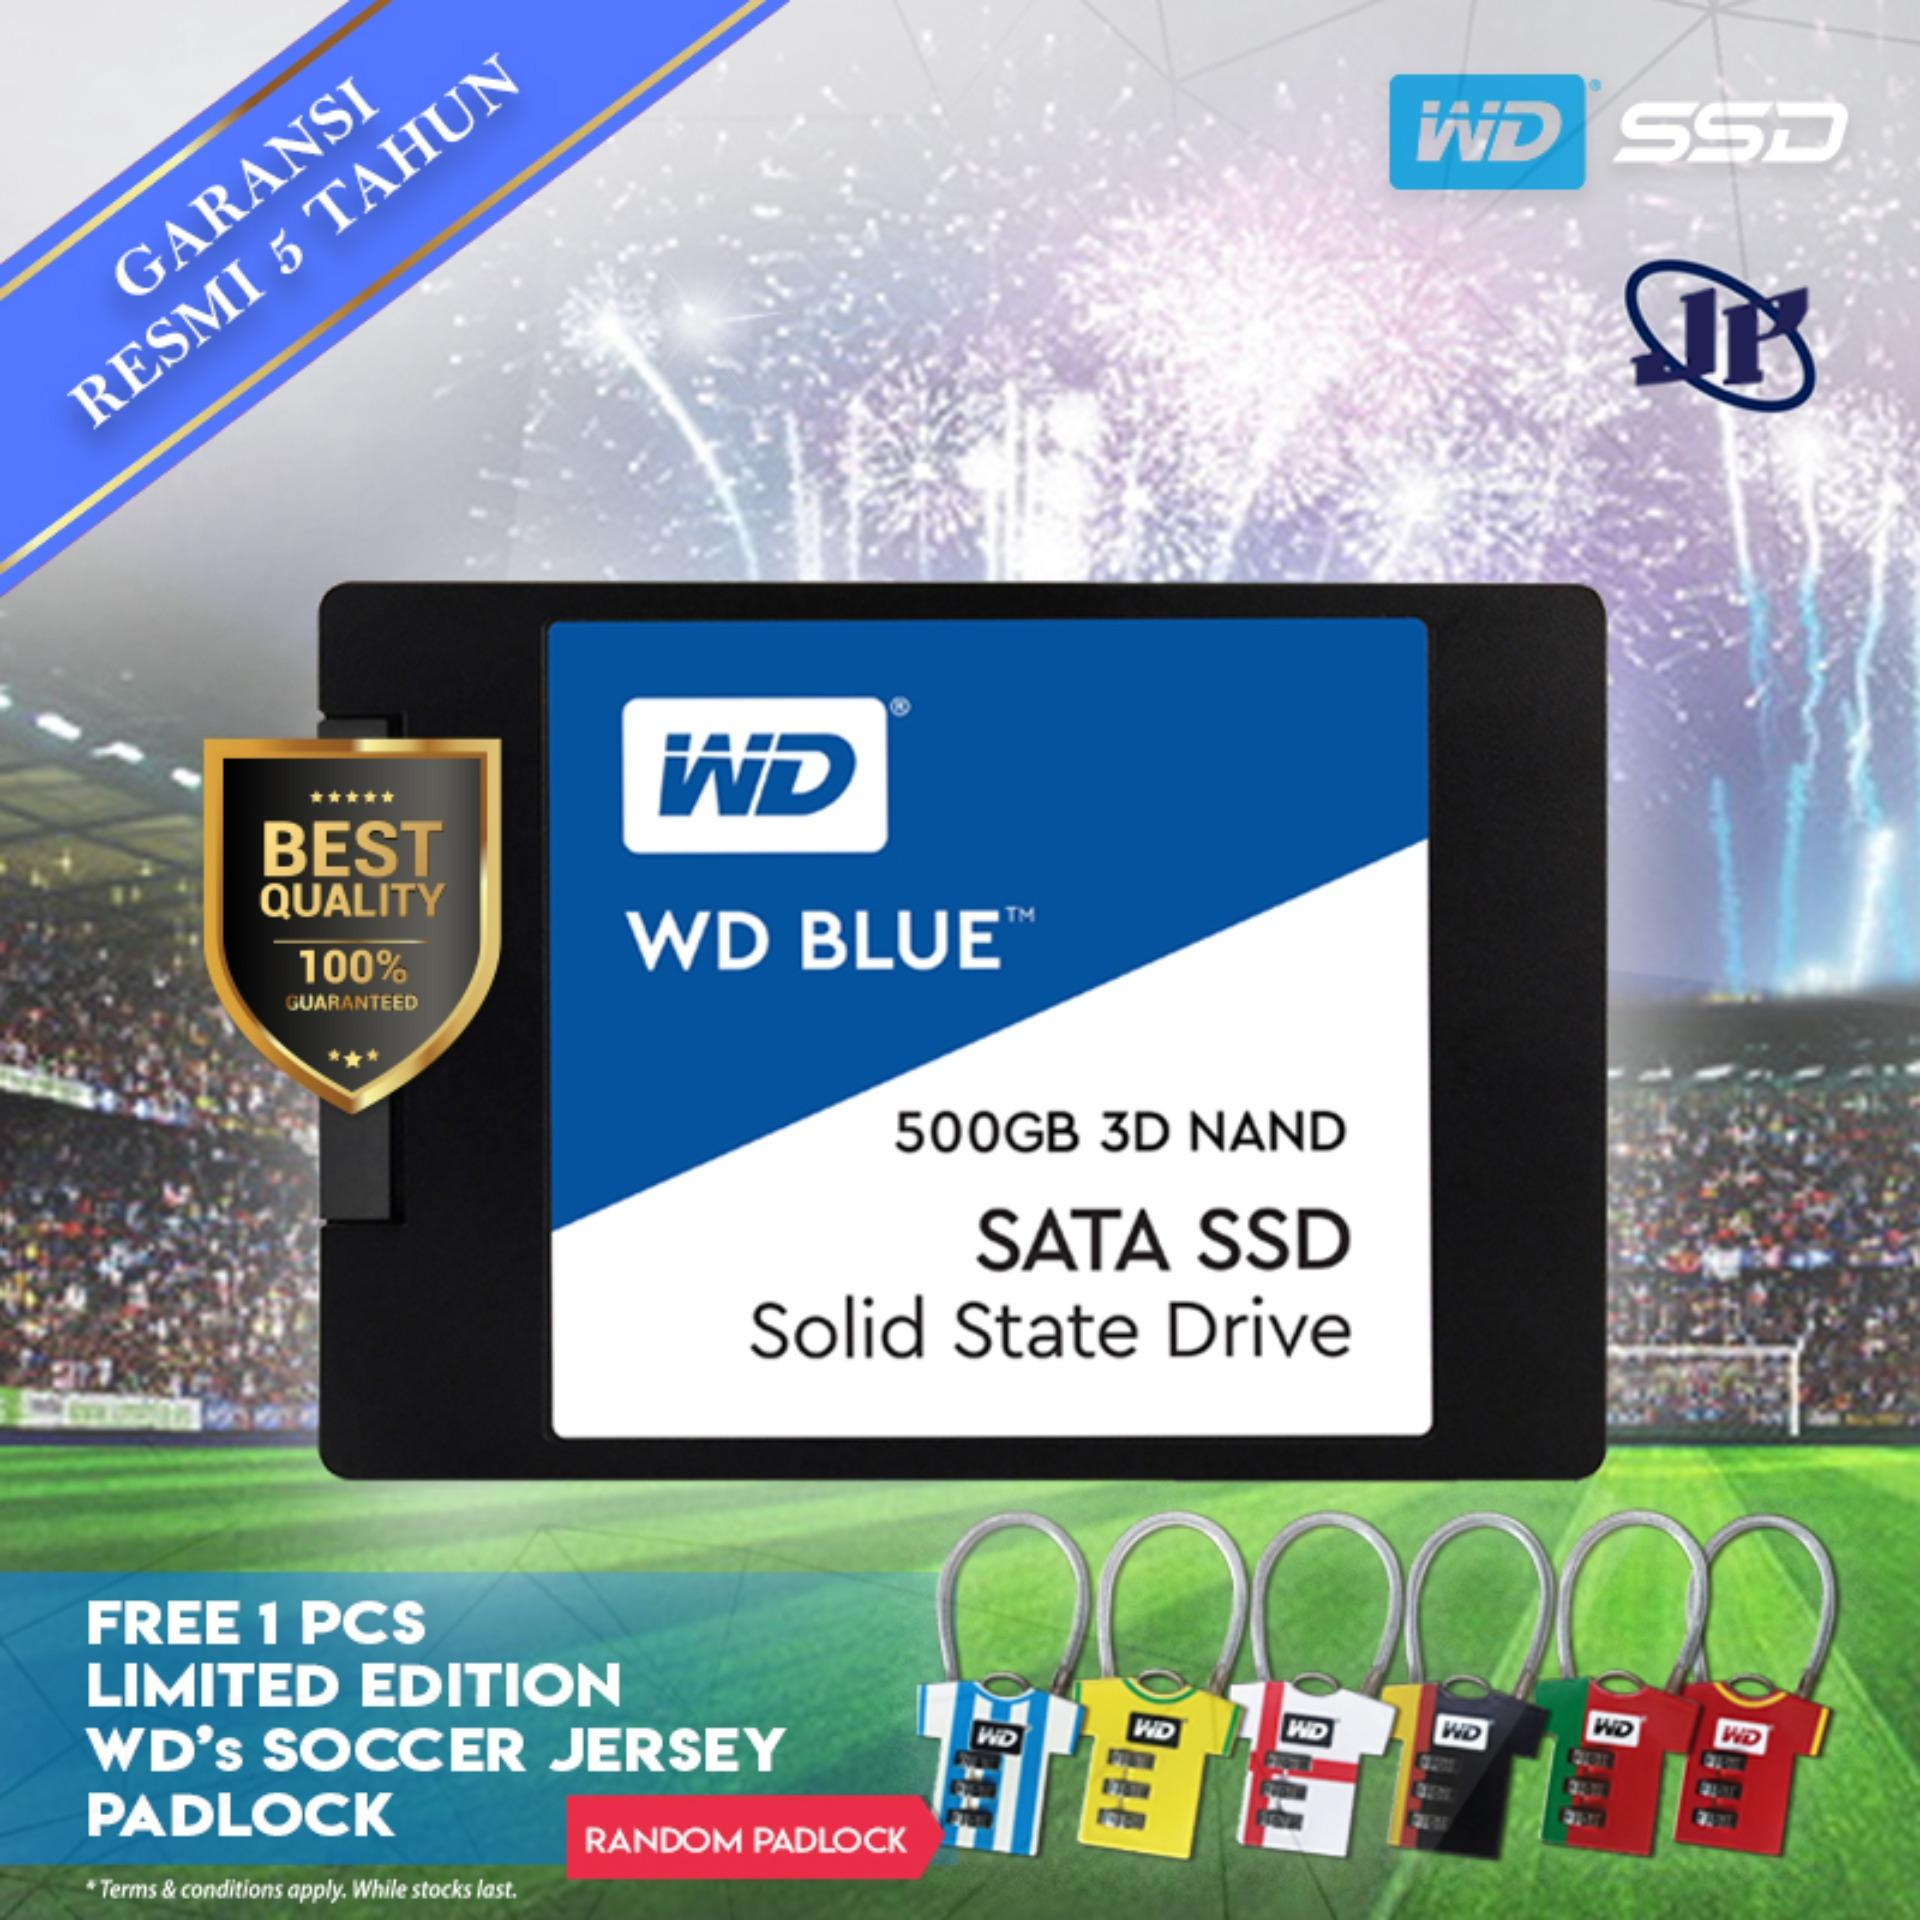 Western Digital WD Blue 3D Nand SSD 500GB 2.5